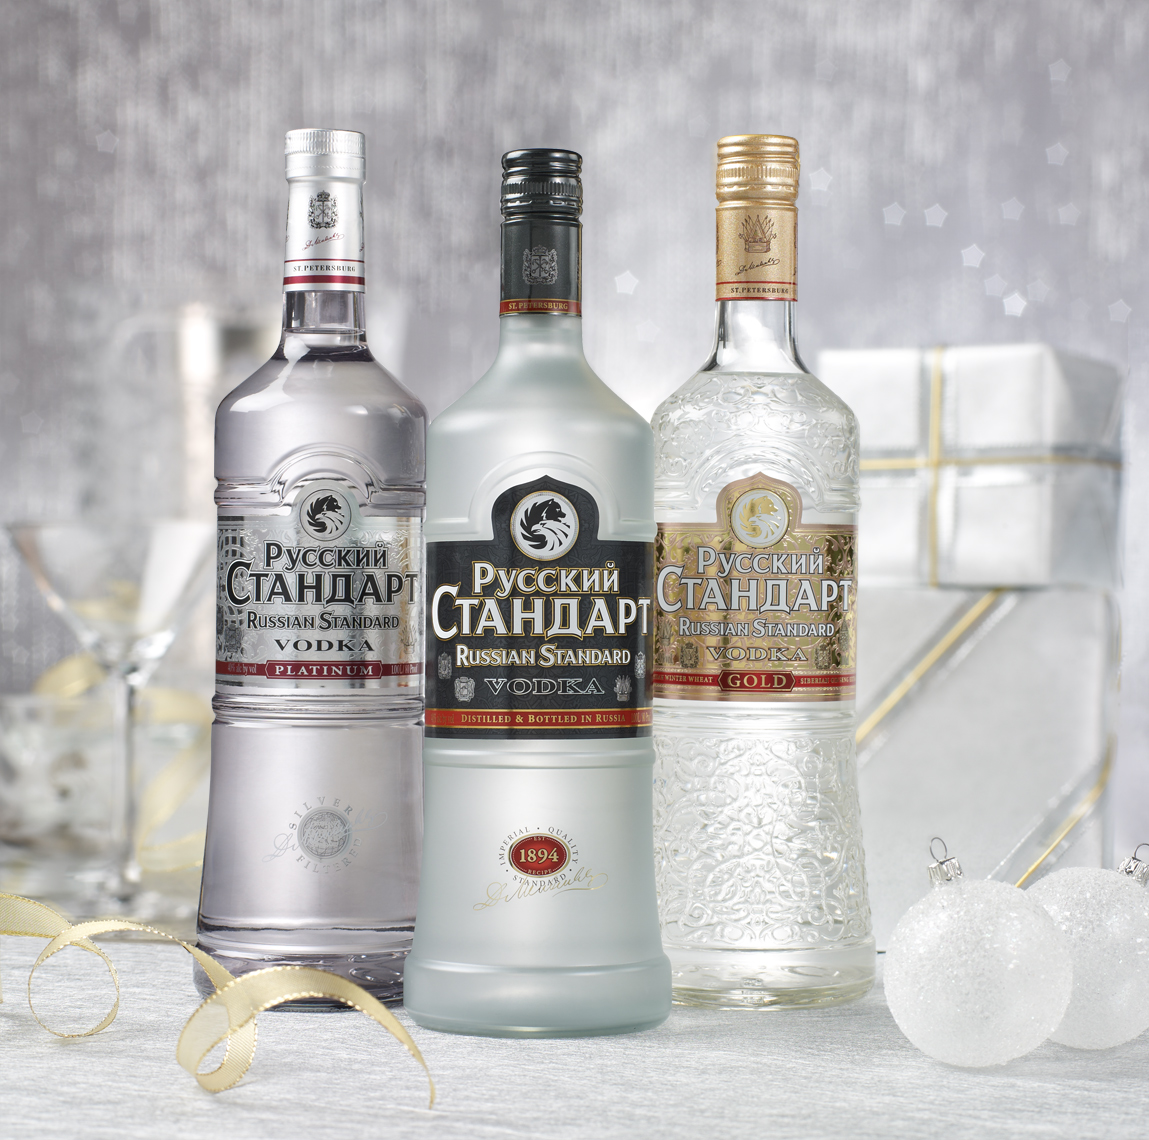 Russian Standard bottles with gifts